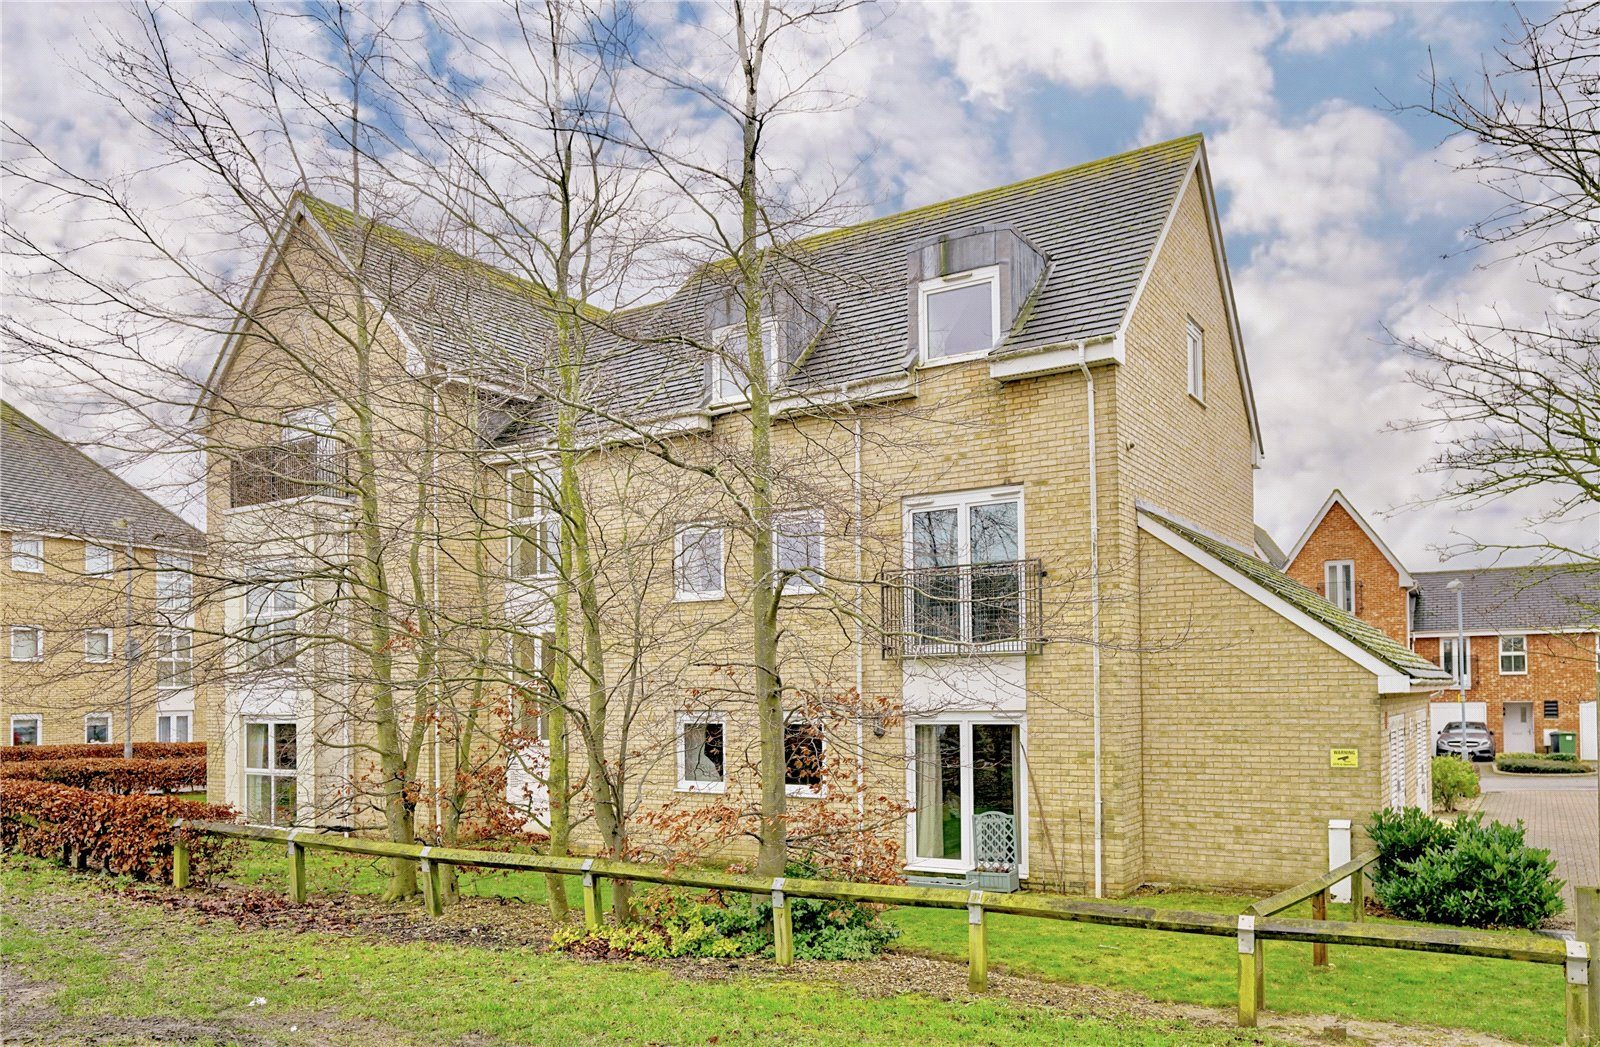 2 bed apartment for sale in Linton Close, Eaton Socon, PE19